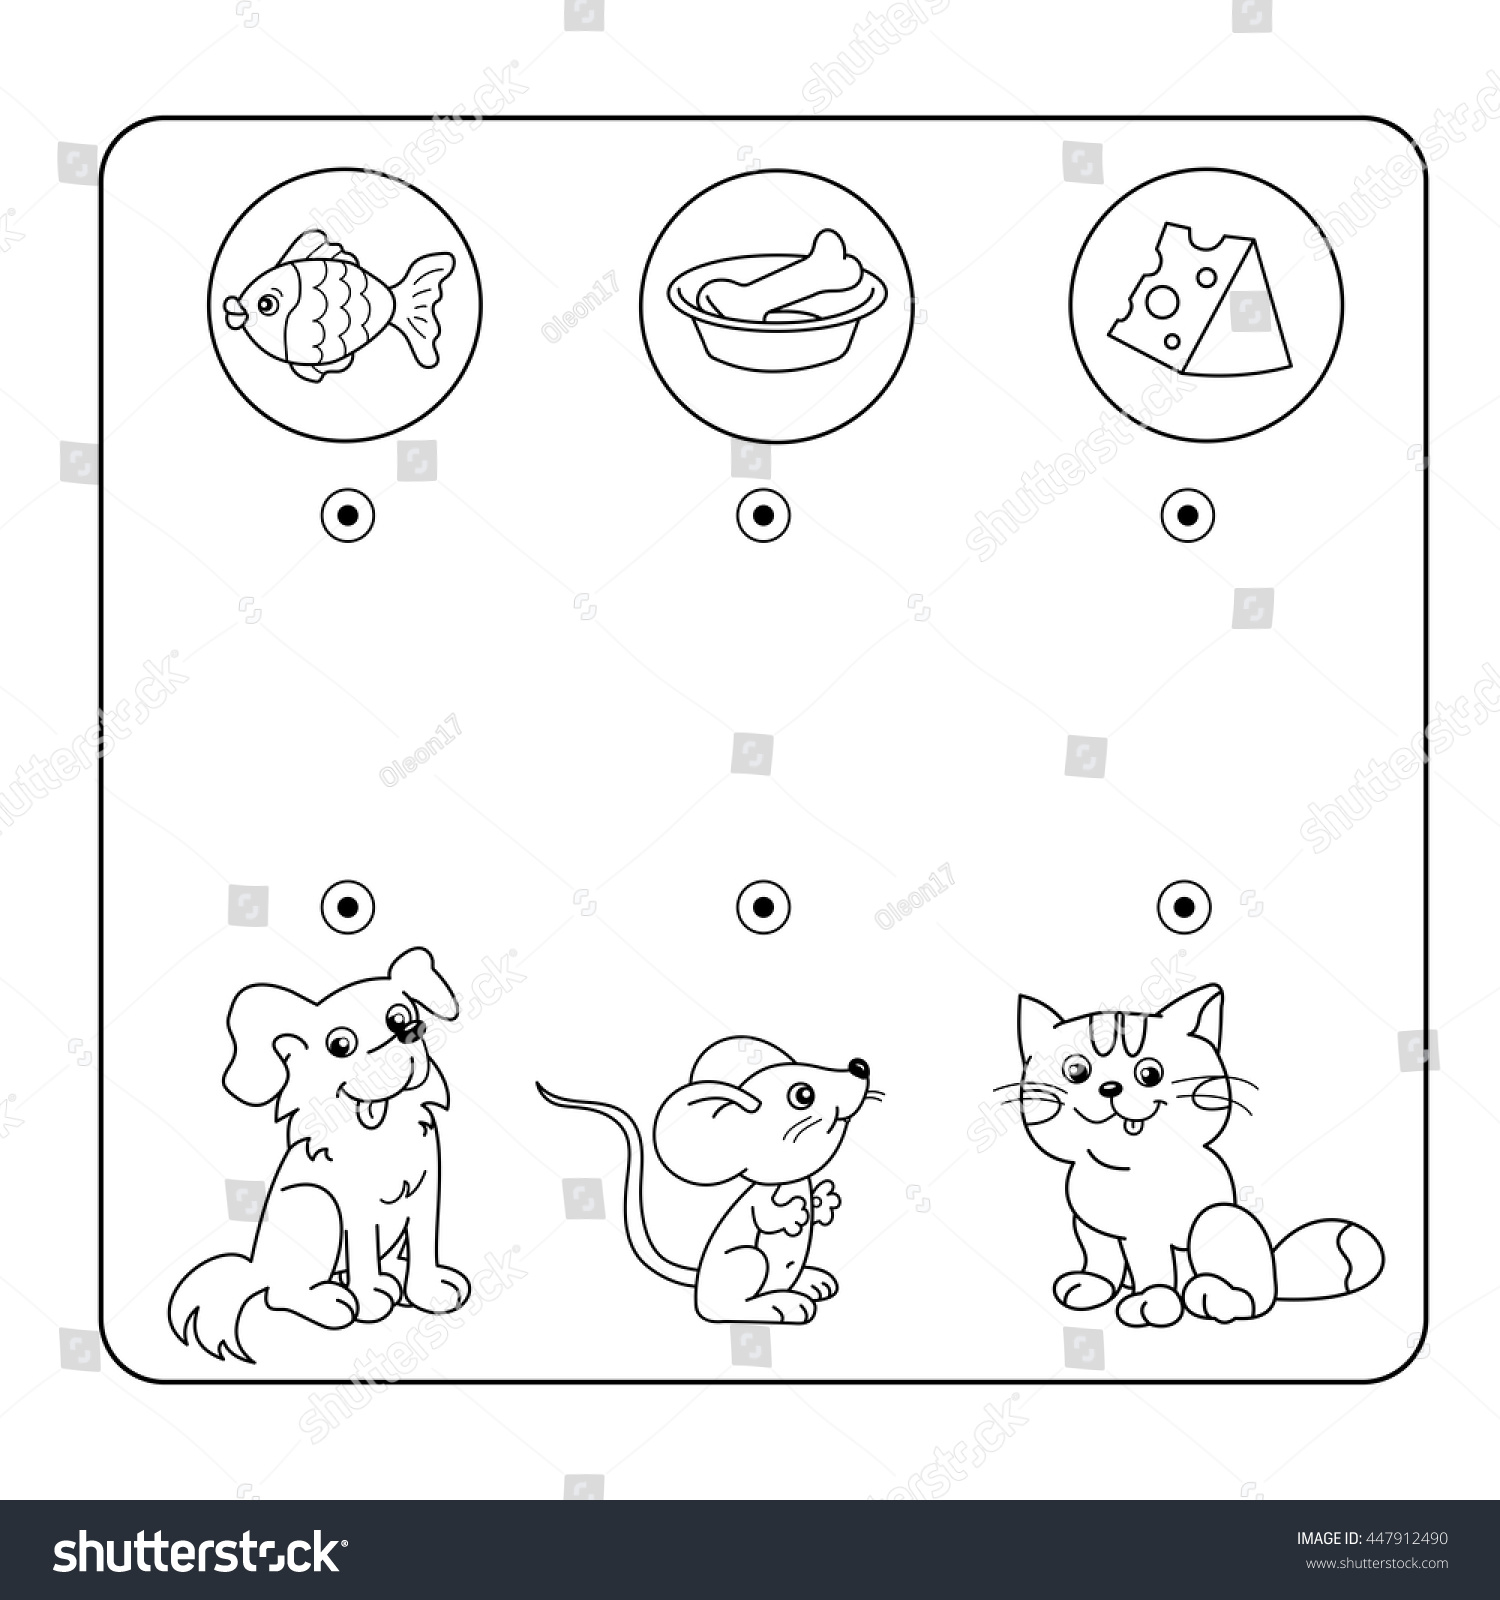 Cartoon Animals Their Favorite Food Maze Stock Vector